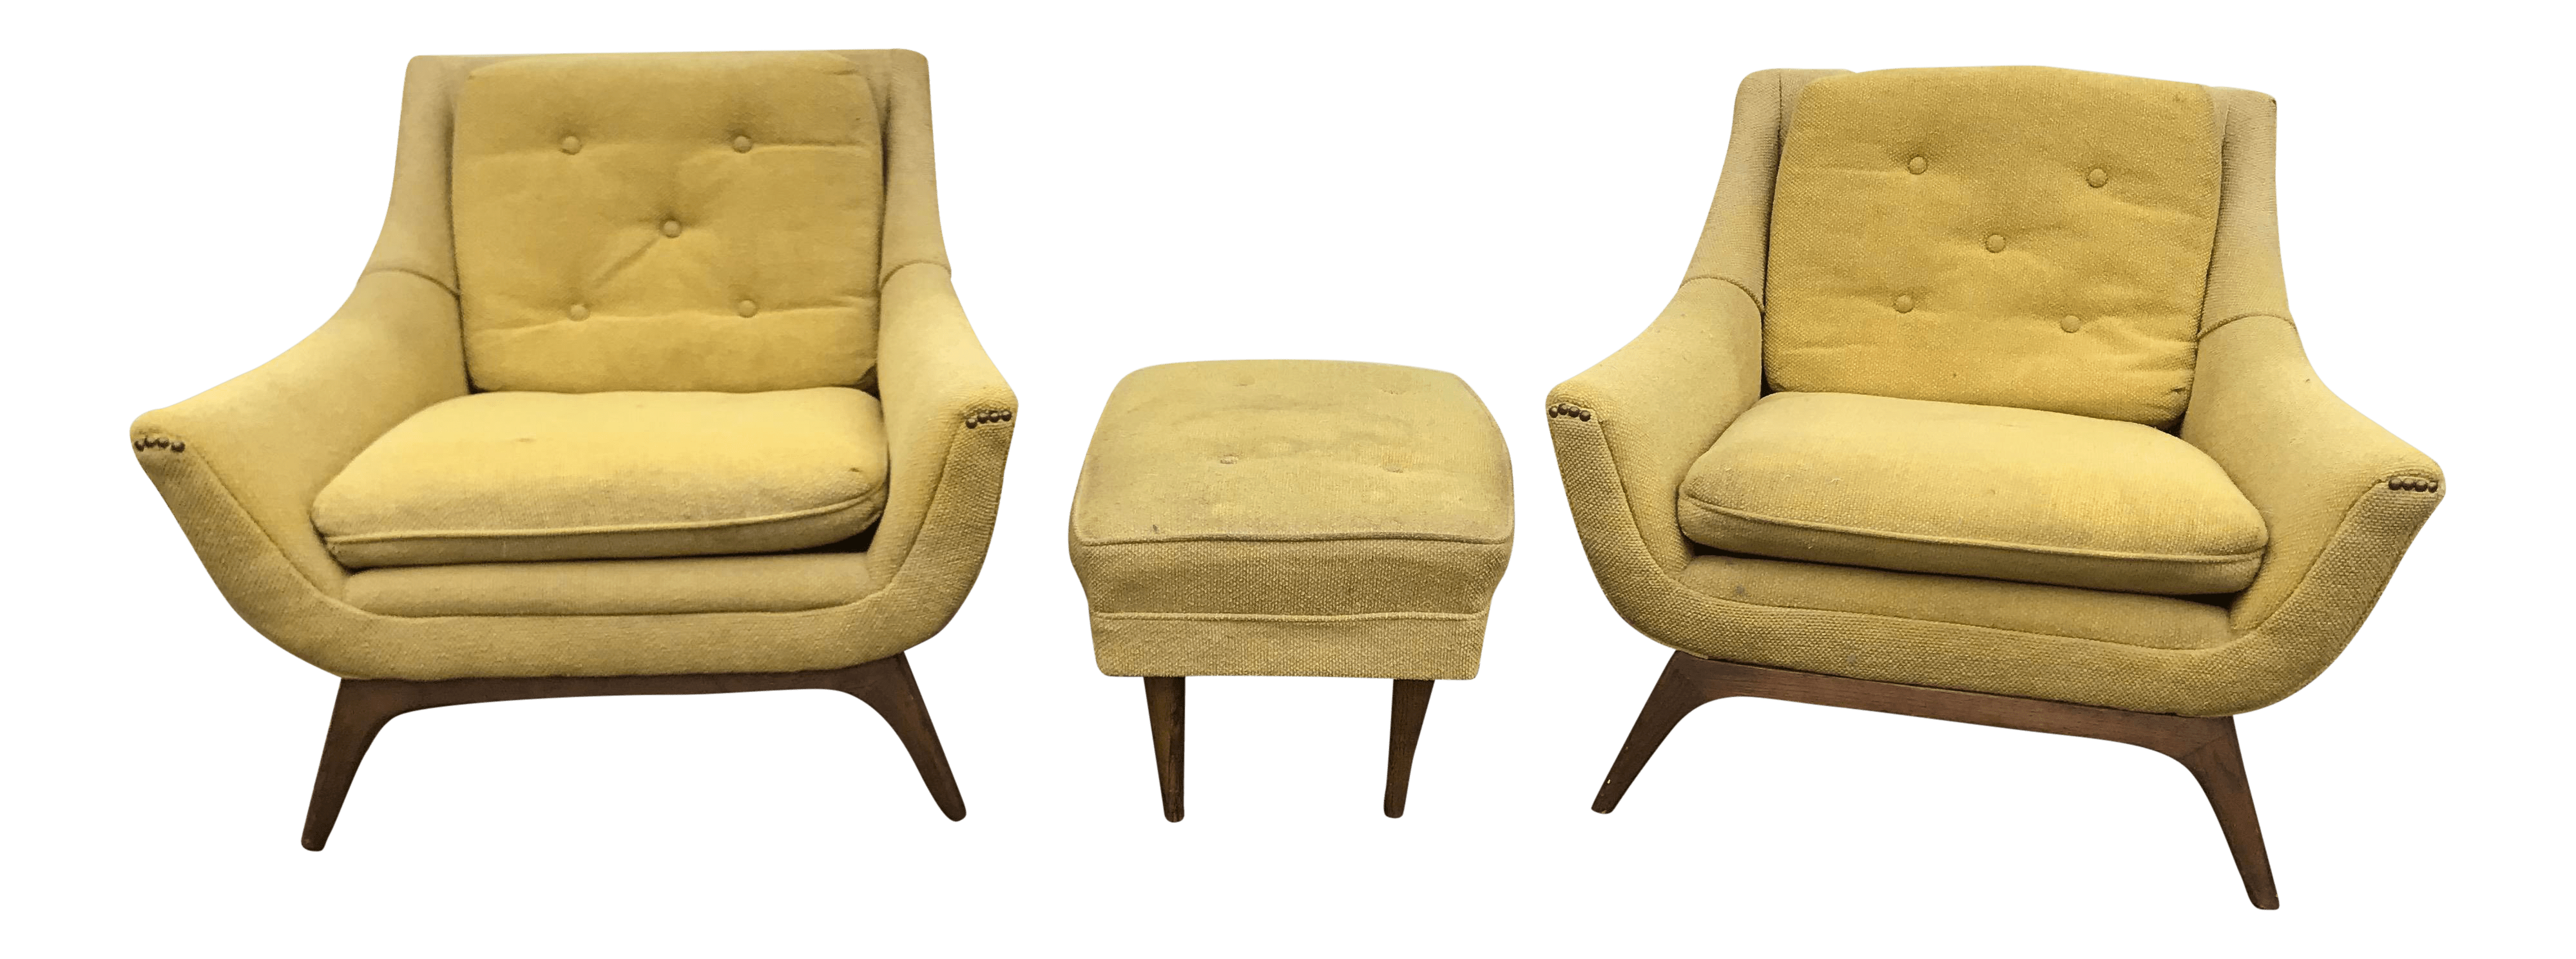 adrian pearsall chair dining covers nz mid century modern chairs a pair ottoman chairish for sale